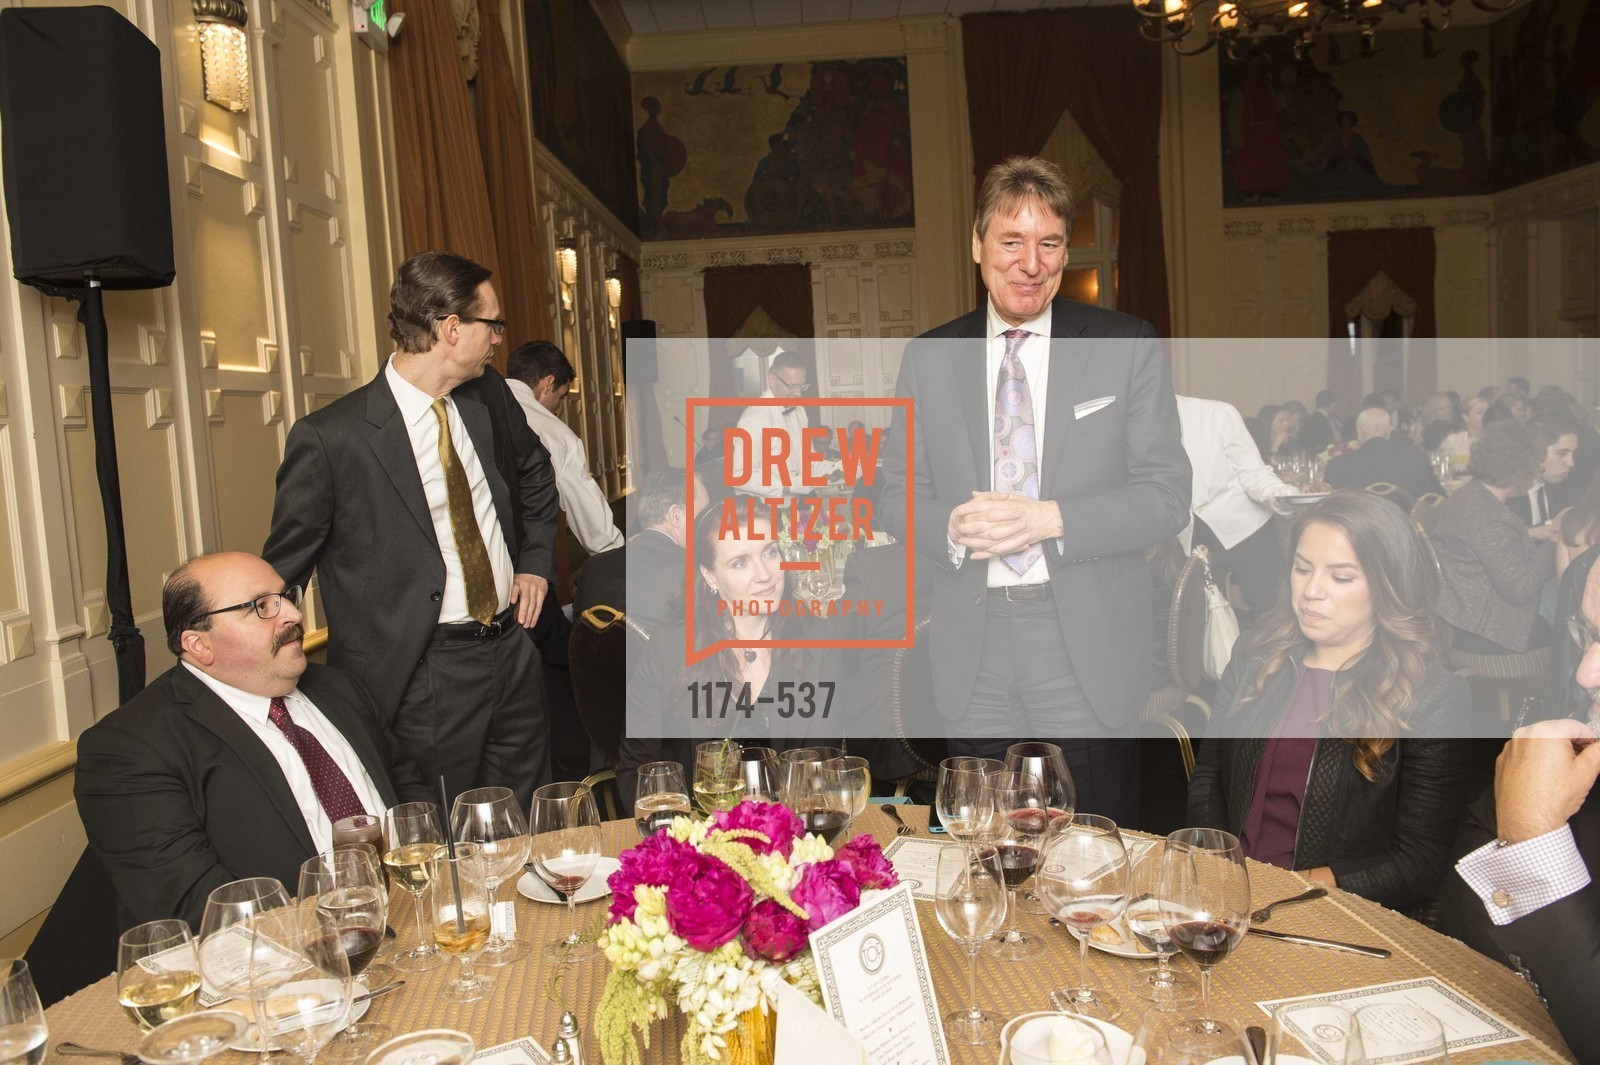 Peter Koehler, TOP OF THE MARK'S 75TH Anniversary Party, US, November 6th, 2014,Drew Altizer, Drew Altizer Photography, full-service agency, private events, San Francisco photographer, photographer california